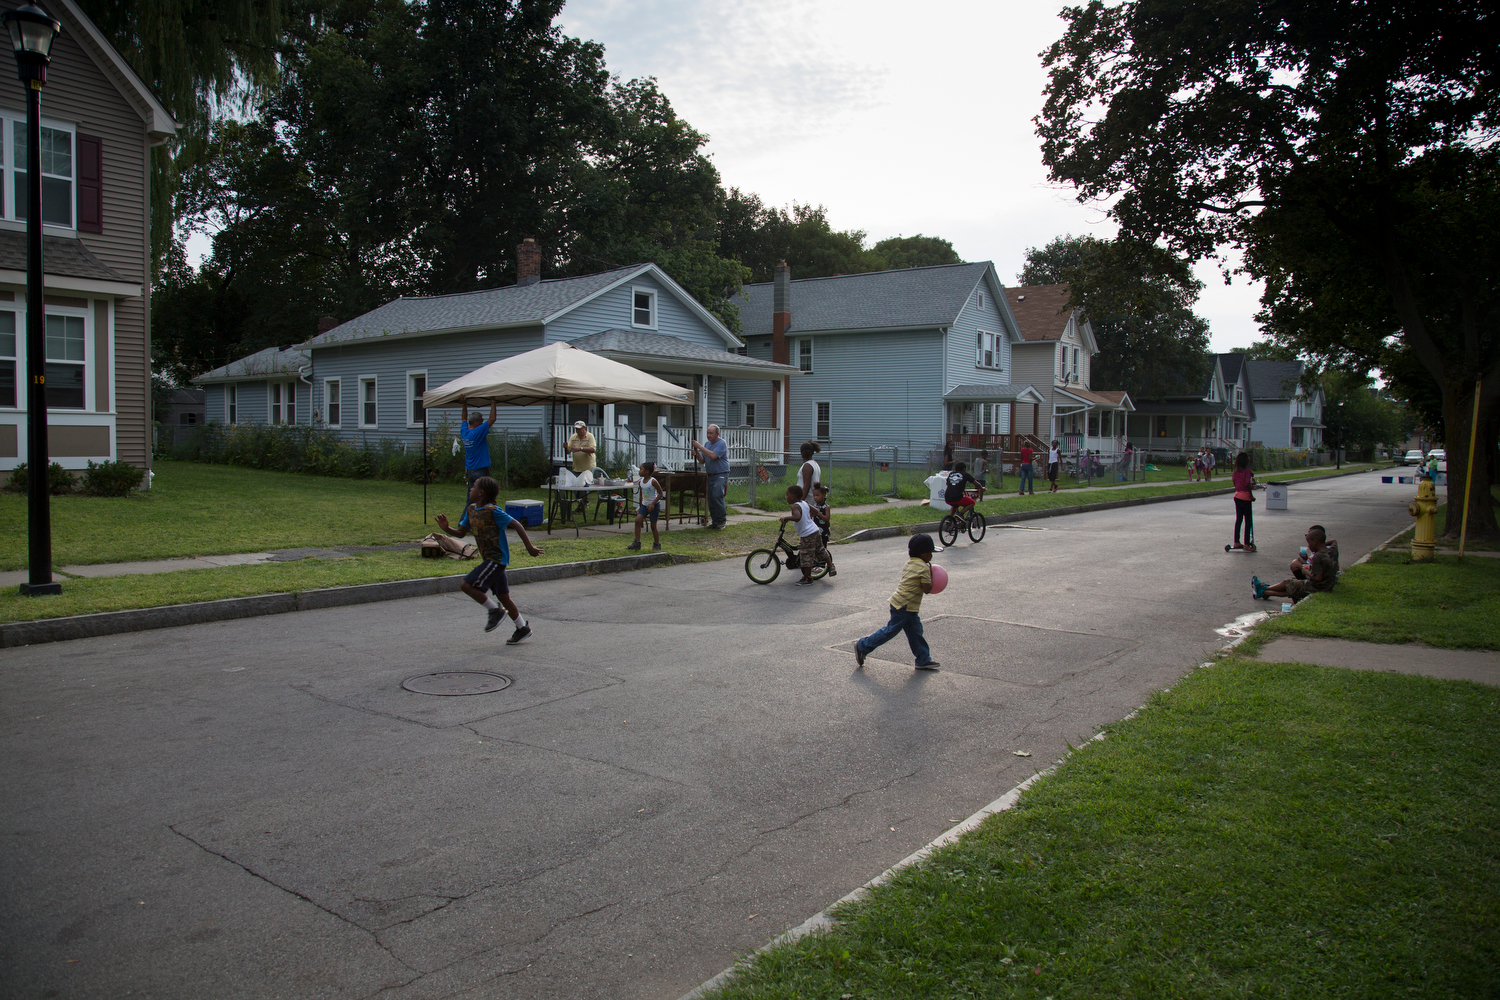 The Marketview Heights Collective Action Project Block Party winds down for the evening on Weld Street, Rochester, N.Y., Aug. 29, 2015. This is the third annual block party for the community after about a 30 year hiatus.